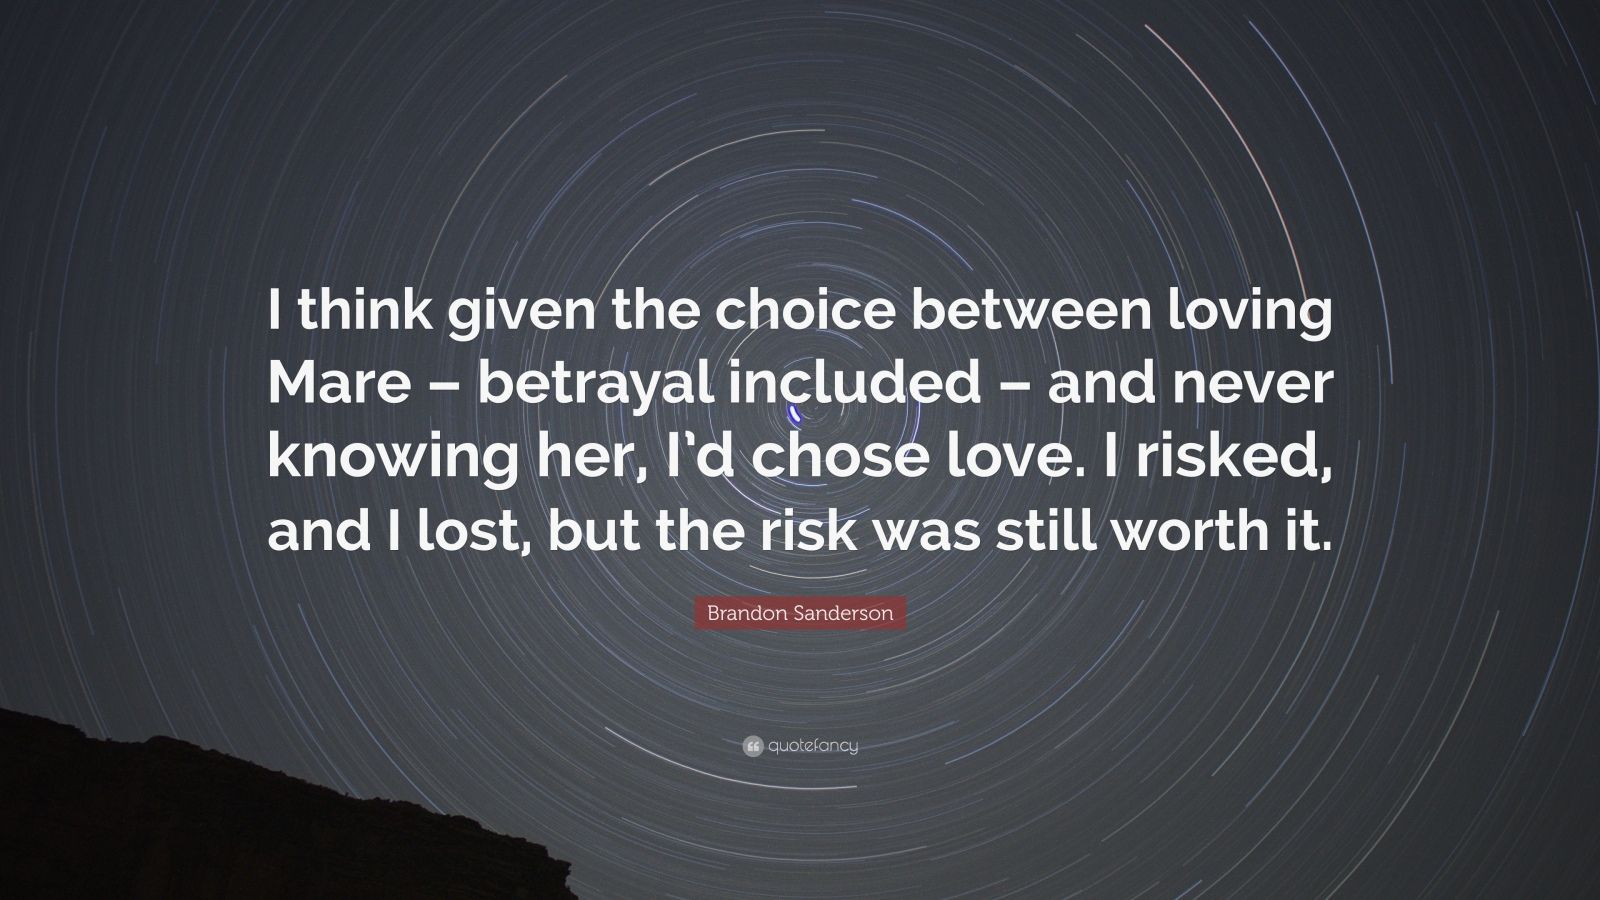 "Brandon Sanderson Quote: ""I think given the choice between loving Mare – betrayal included – and never knowing her, I'd chose love. I risked, and I lost, but the risk was still worth it."""